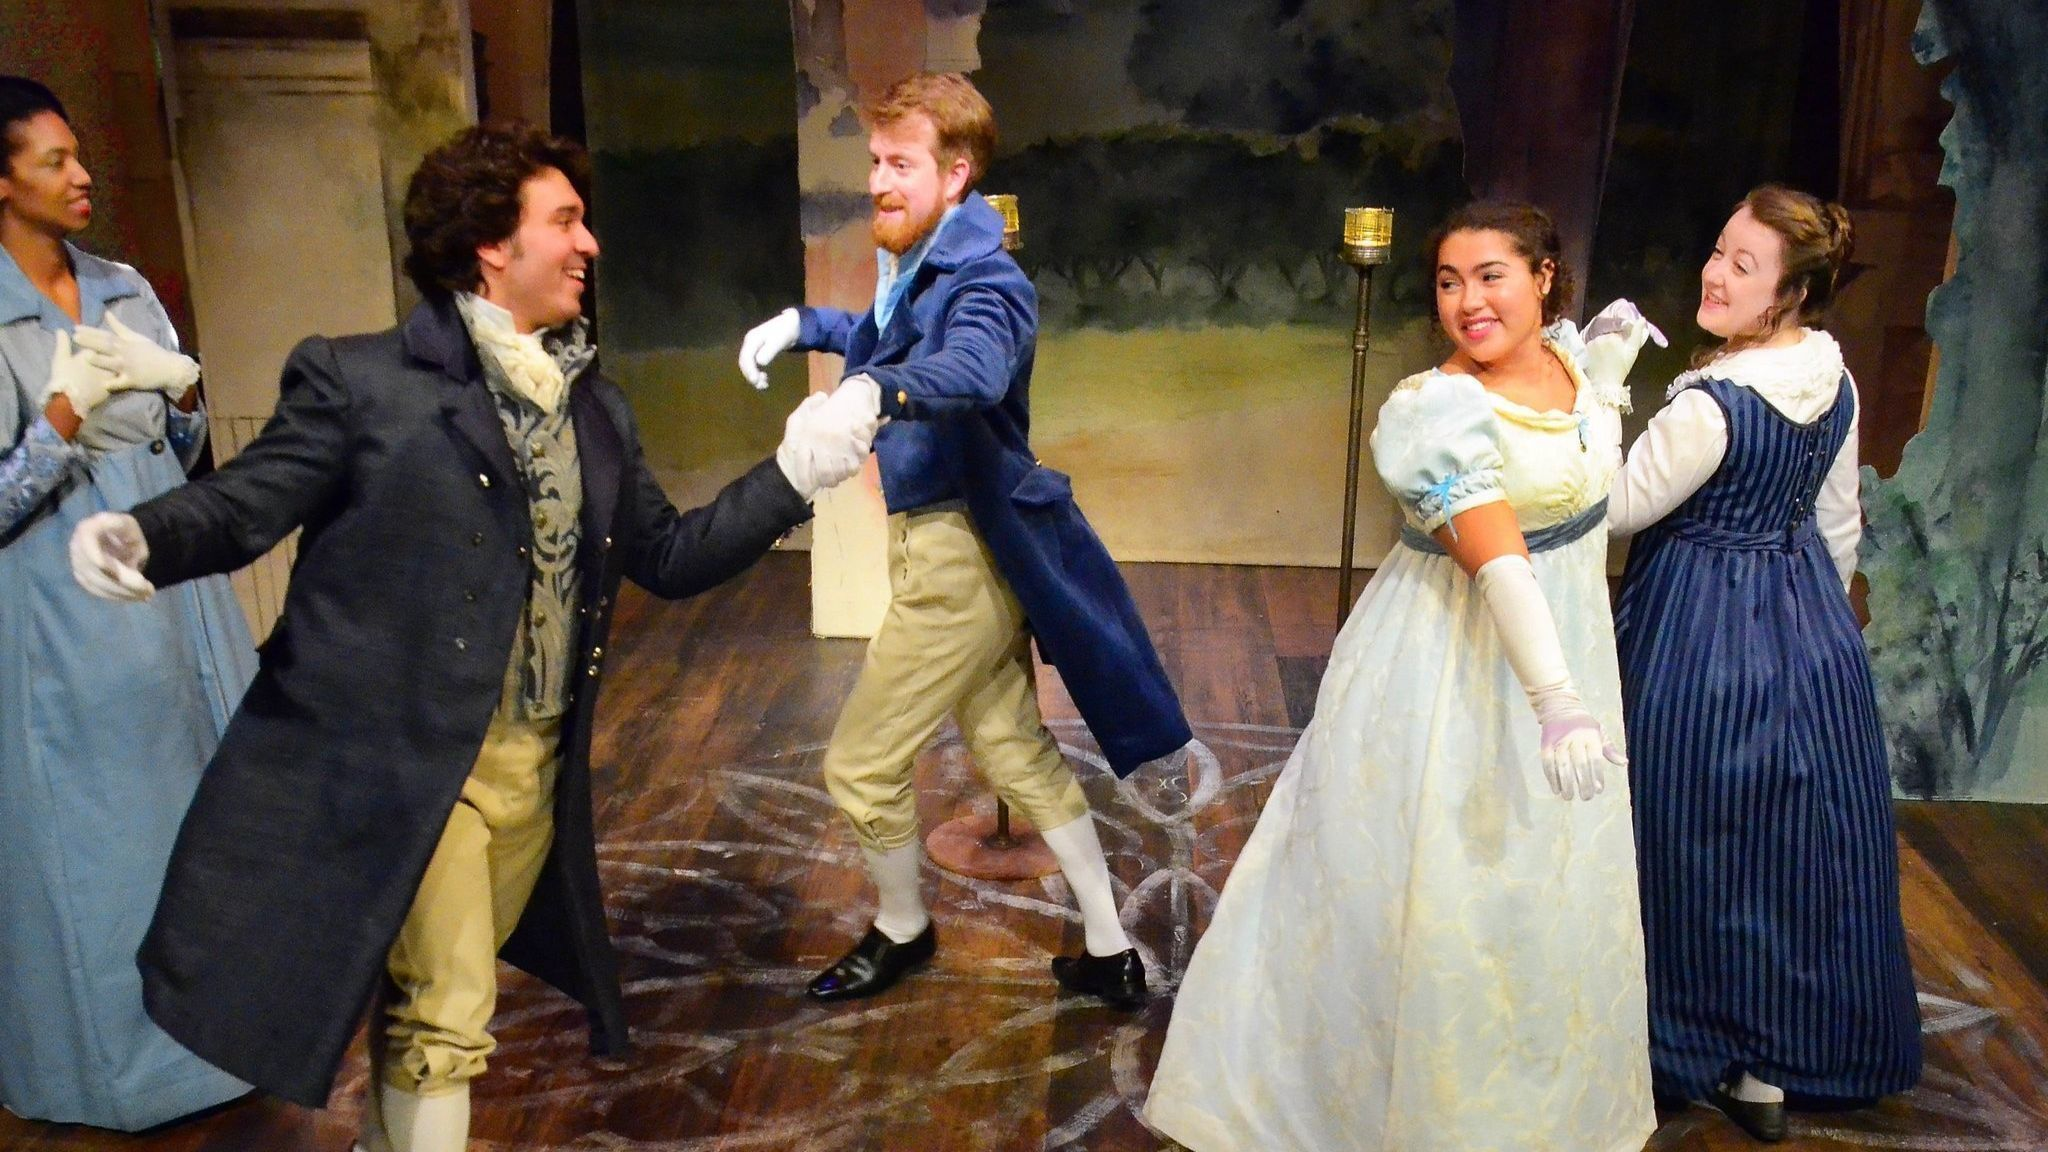 'Emma' at Lifeline Theatre: Jane Austen's matchmaking story is played for warmth and laughs